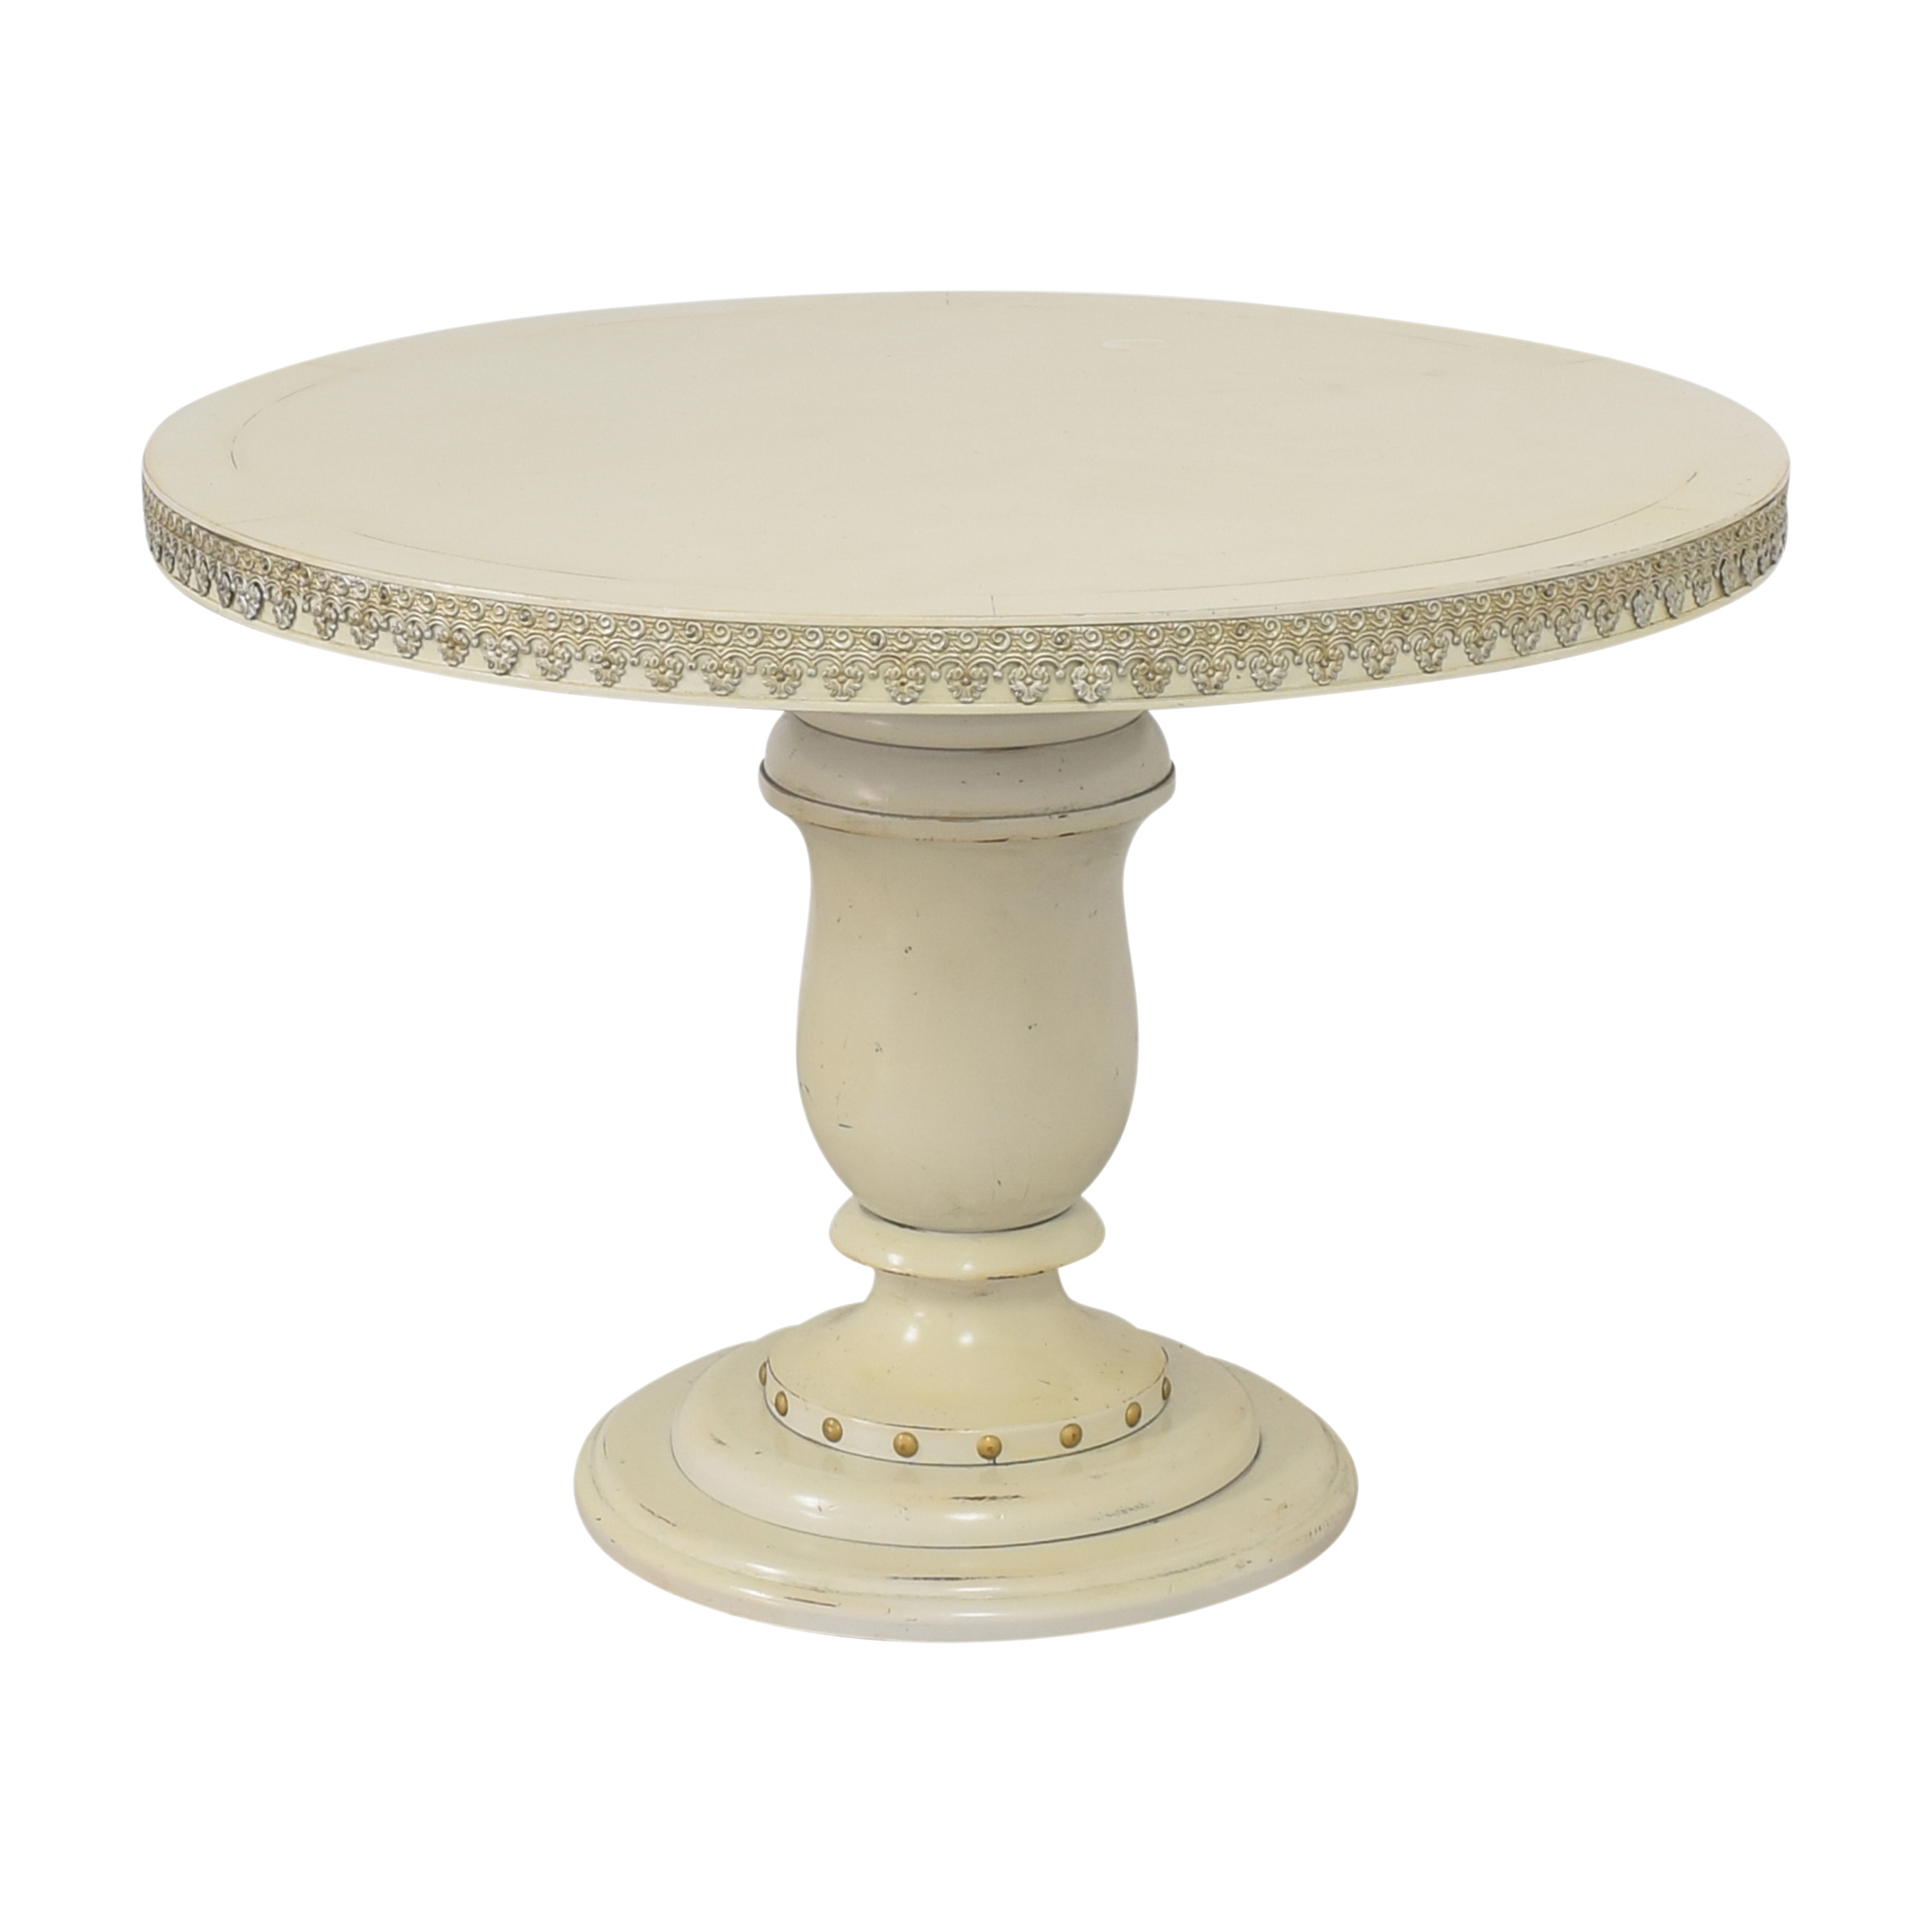 Côté France Accented Round Dining Table / Dinner Tables